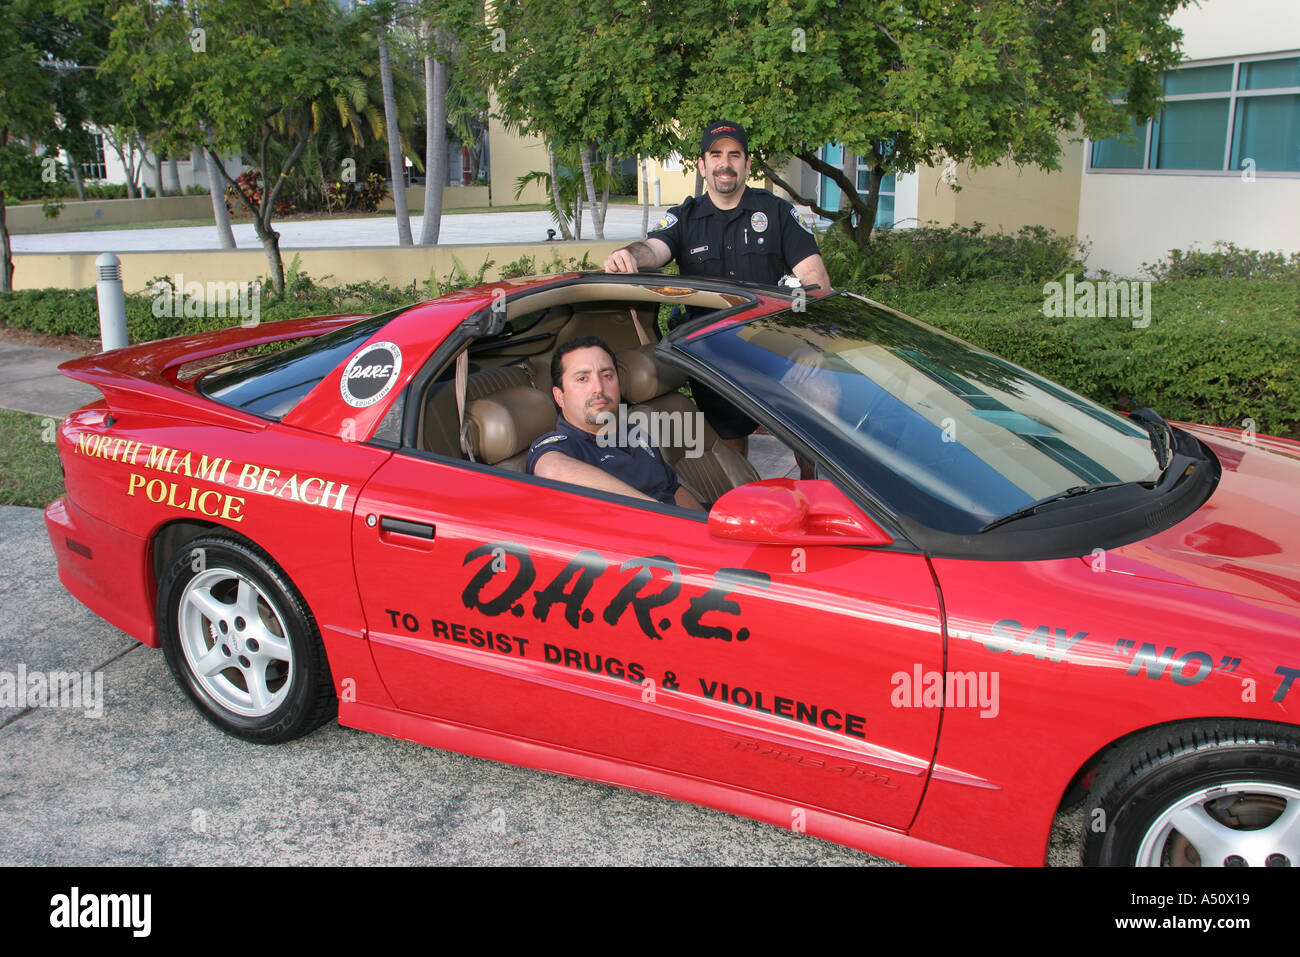 North Miami Beach Florida Police Department DARE Anti Drug Promotion Red  Sports Car